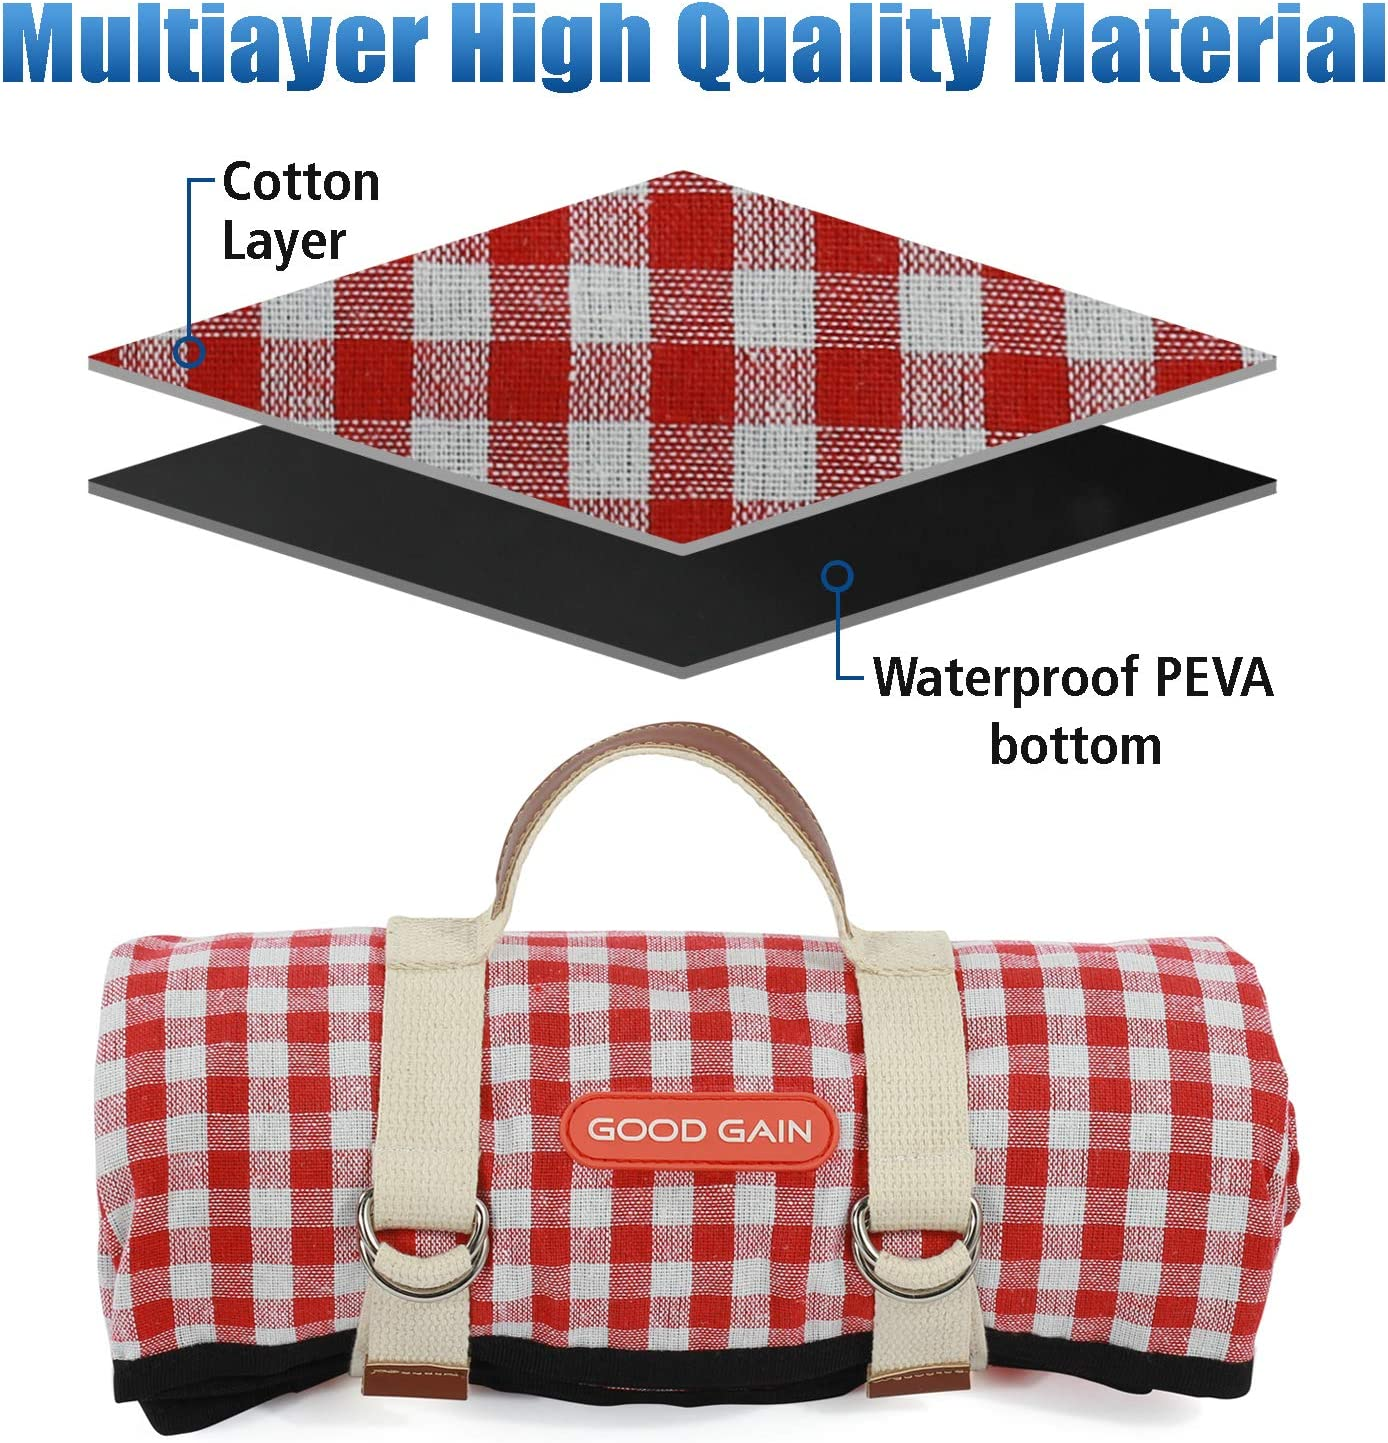 Good Gain Picnic Blanket Waterproof Beach Blanket Portable with Carry Strap Outdoor Camping Party Large Foldable Sand Proof for Wet Grass Hiking or Kids Playground Picnic Mat